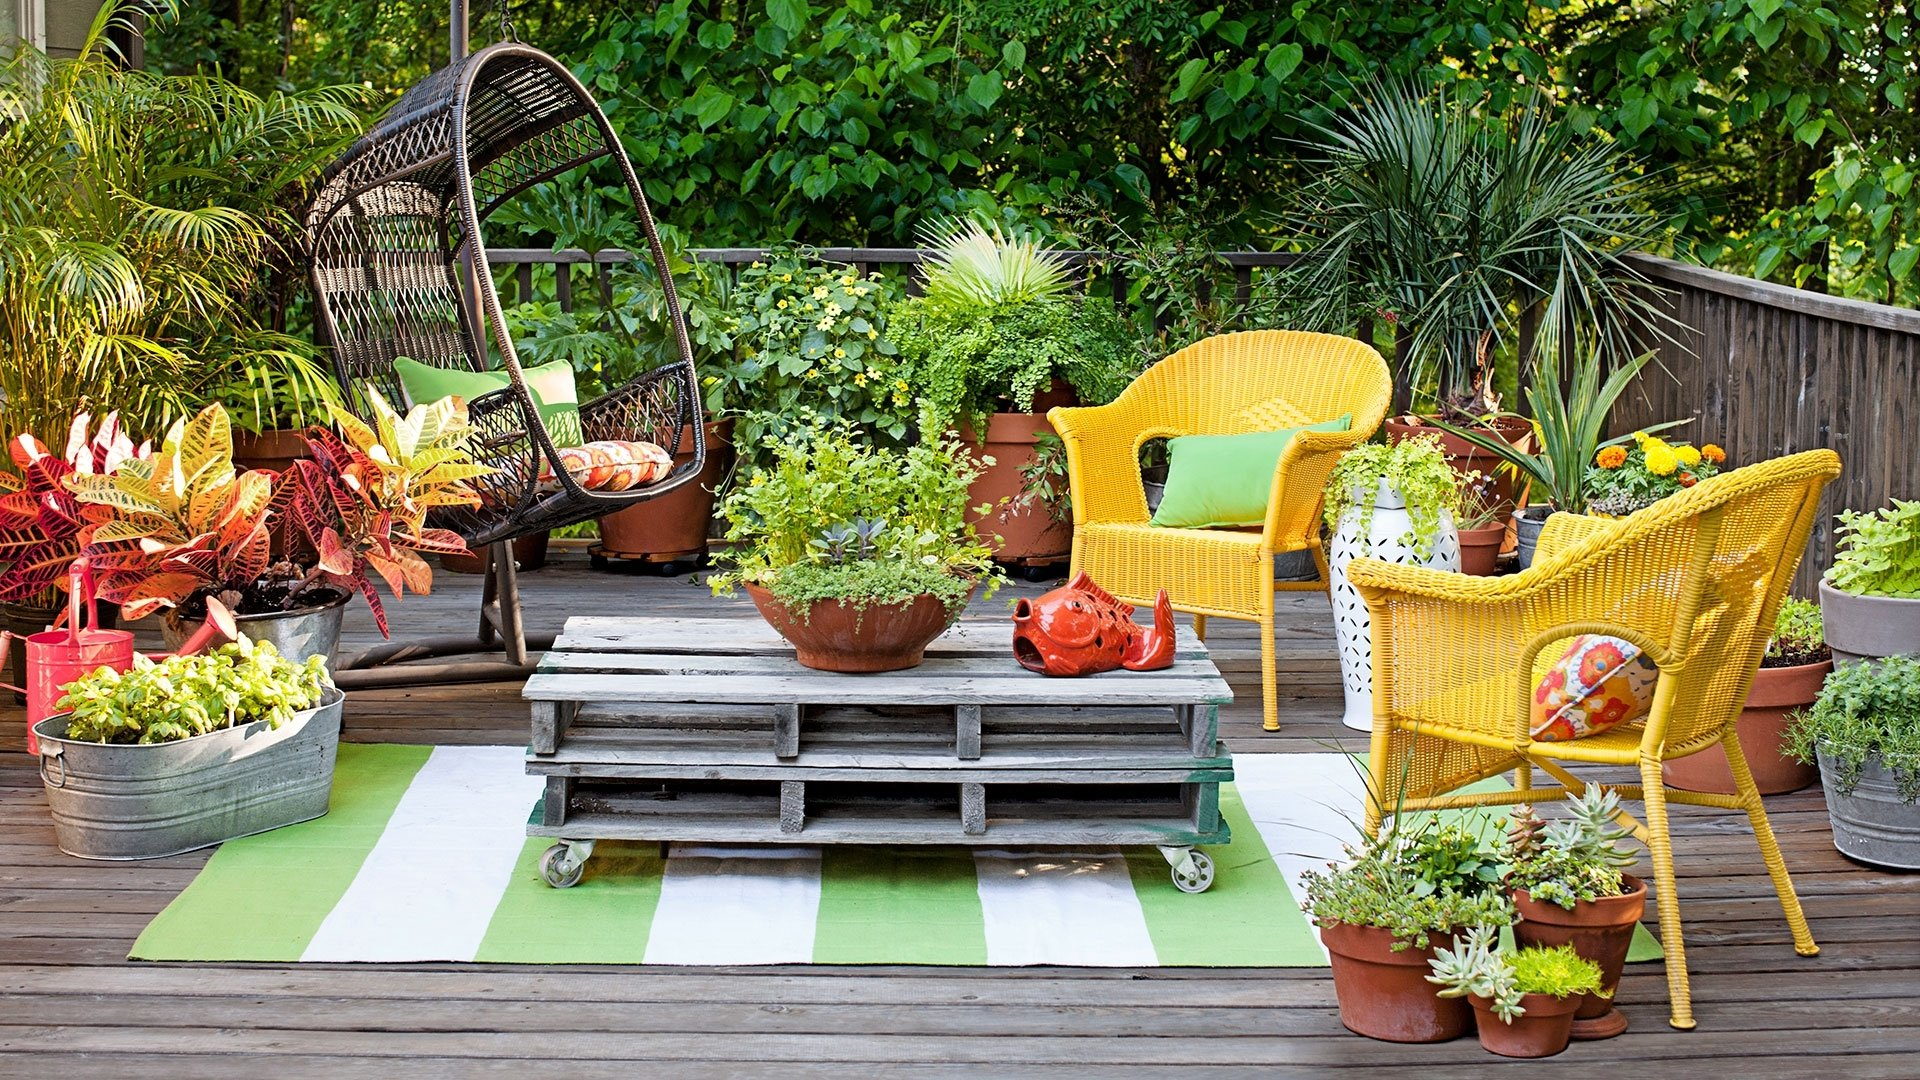 10 Stylish Outdoor Decorating Ideas For Summer summer outdoor decorating ideas 2018 home and design ideas 2020